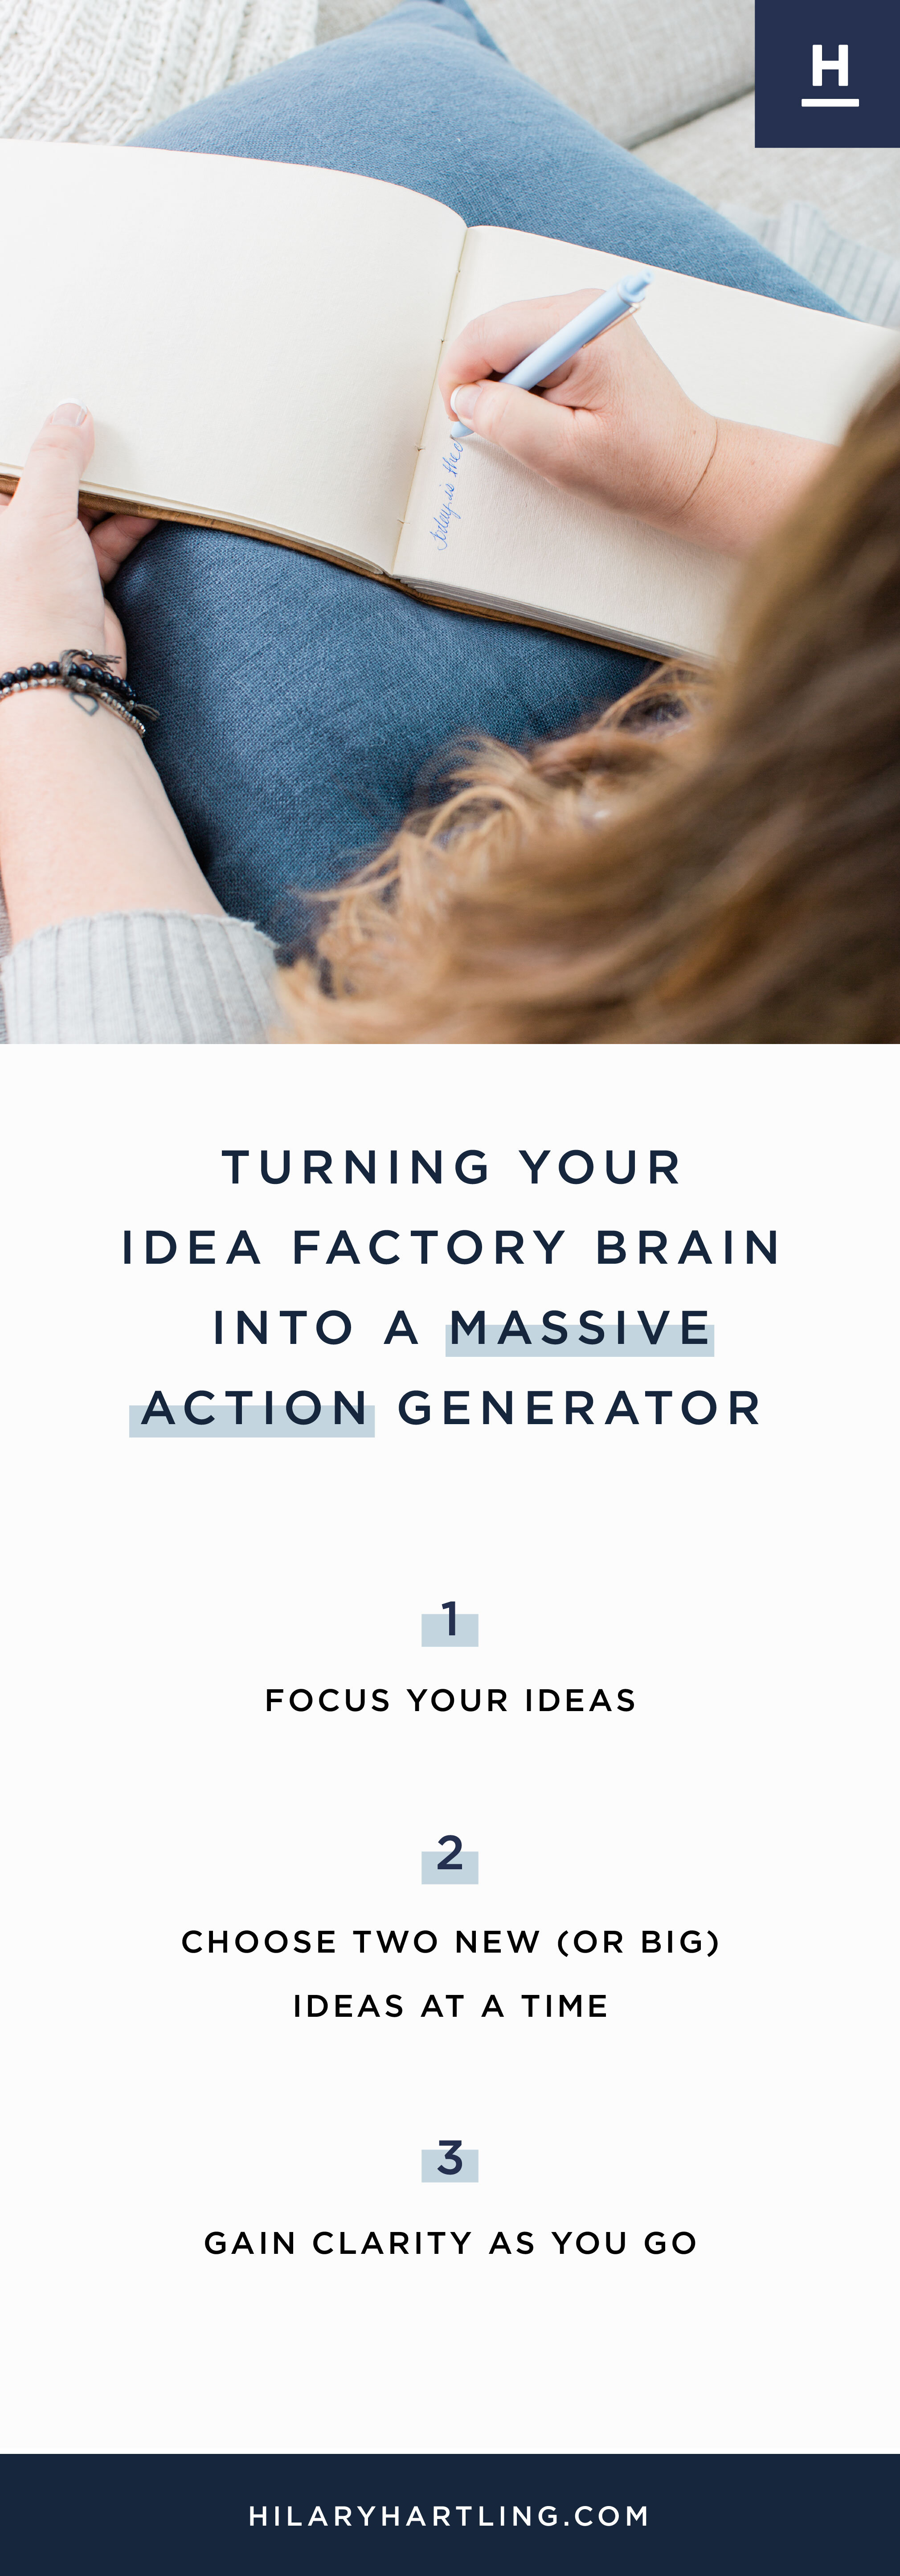 Turning-Your--Idea-Factory-Brain--Into-A-Massive--Action-Generator2.jpg